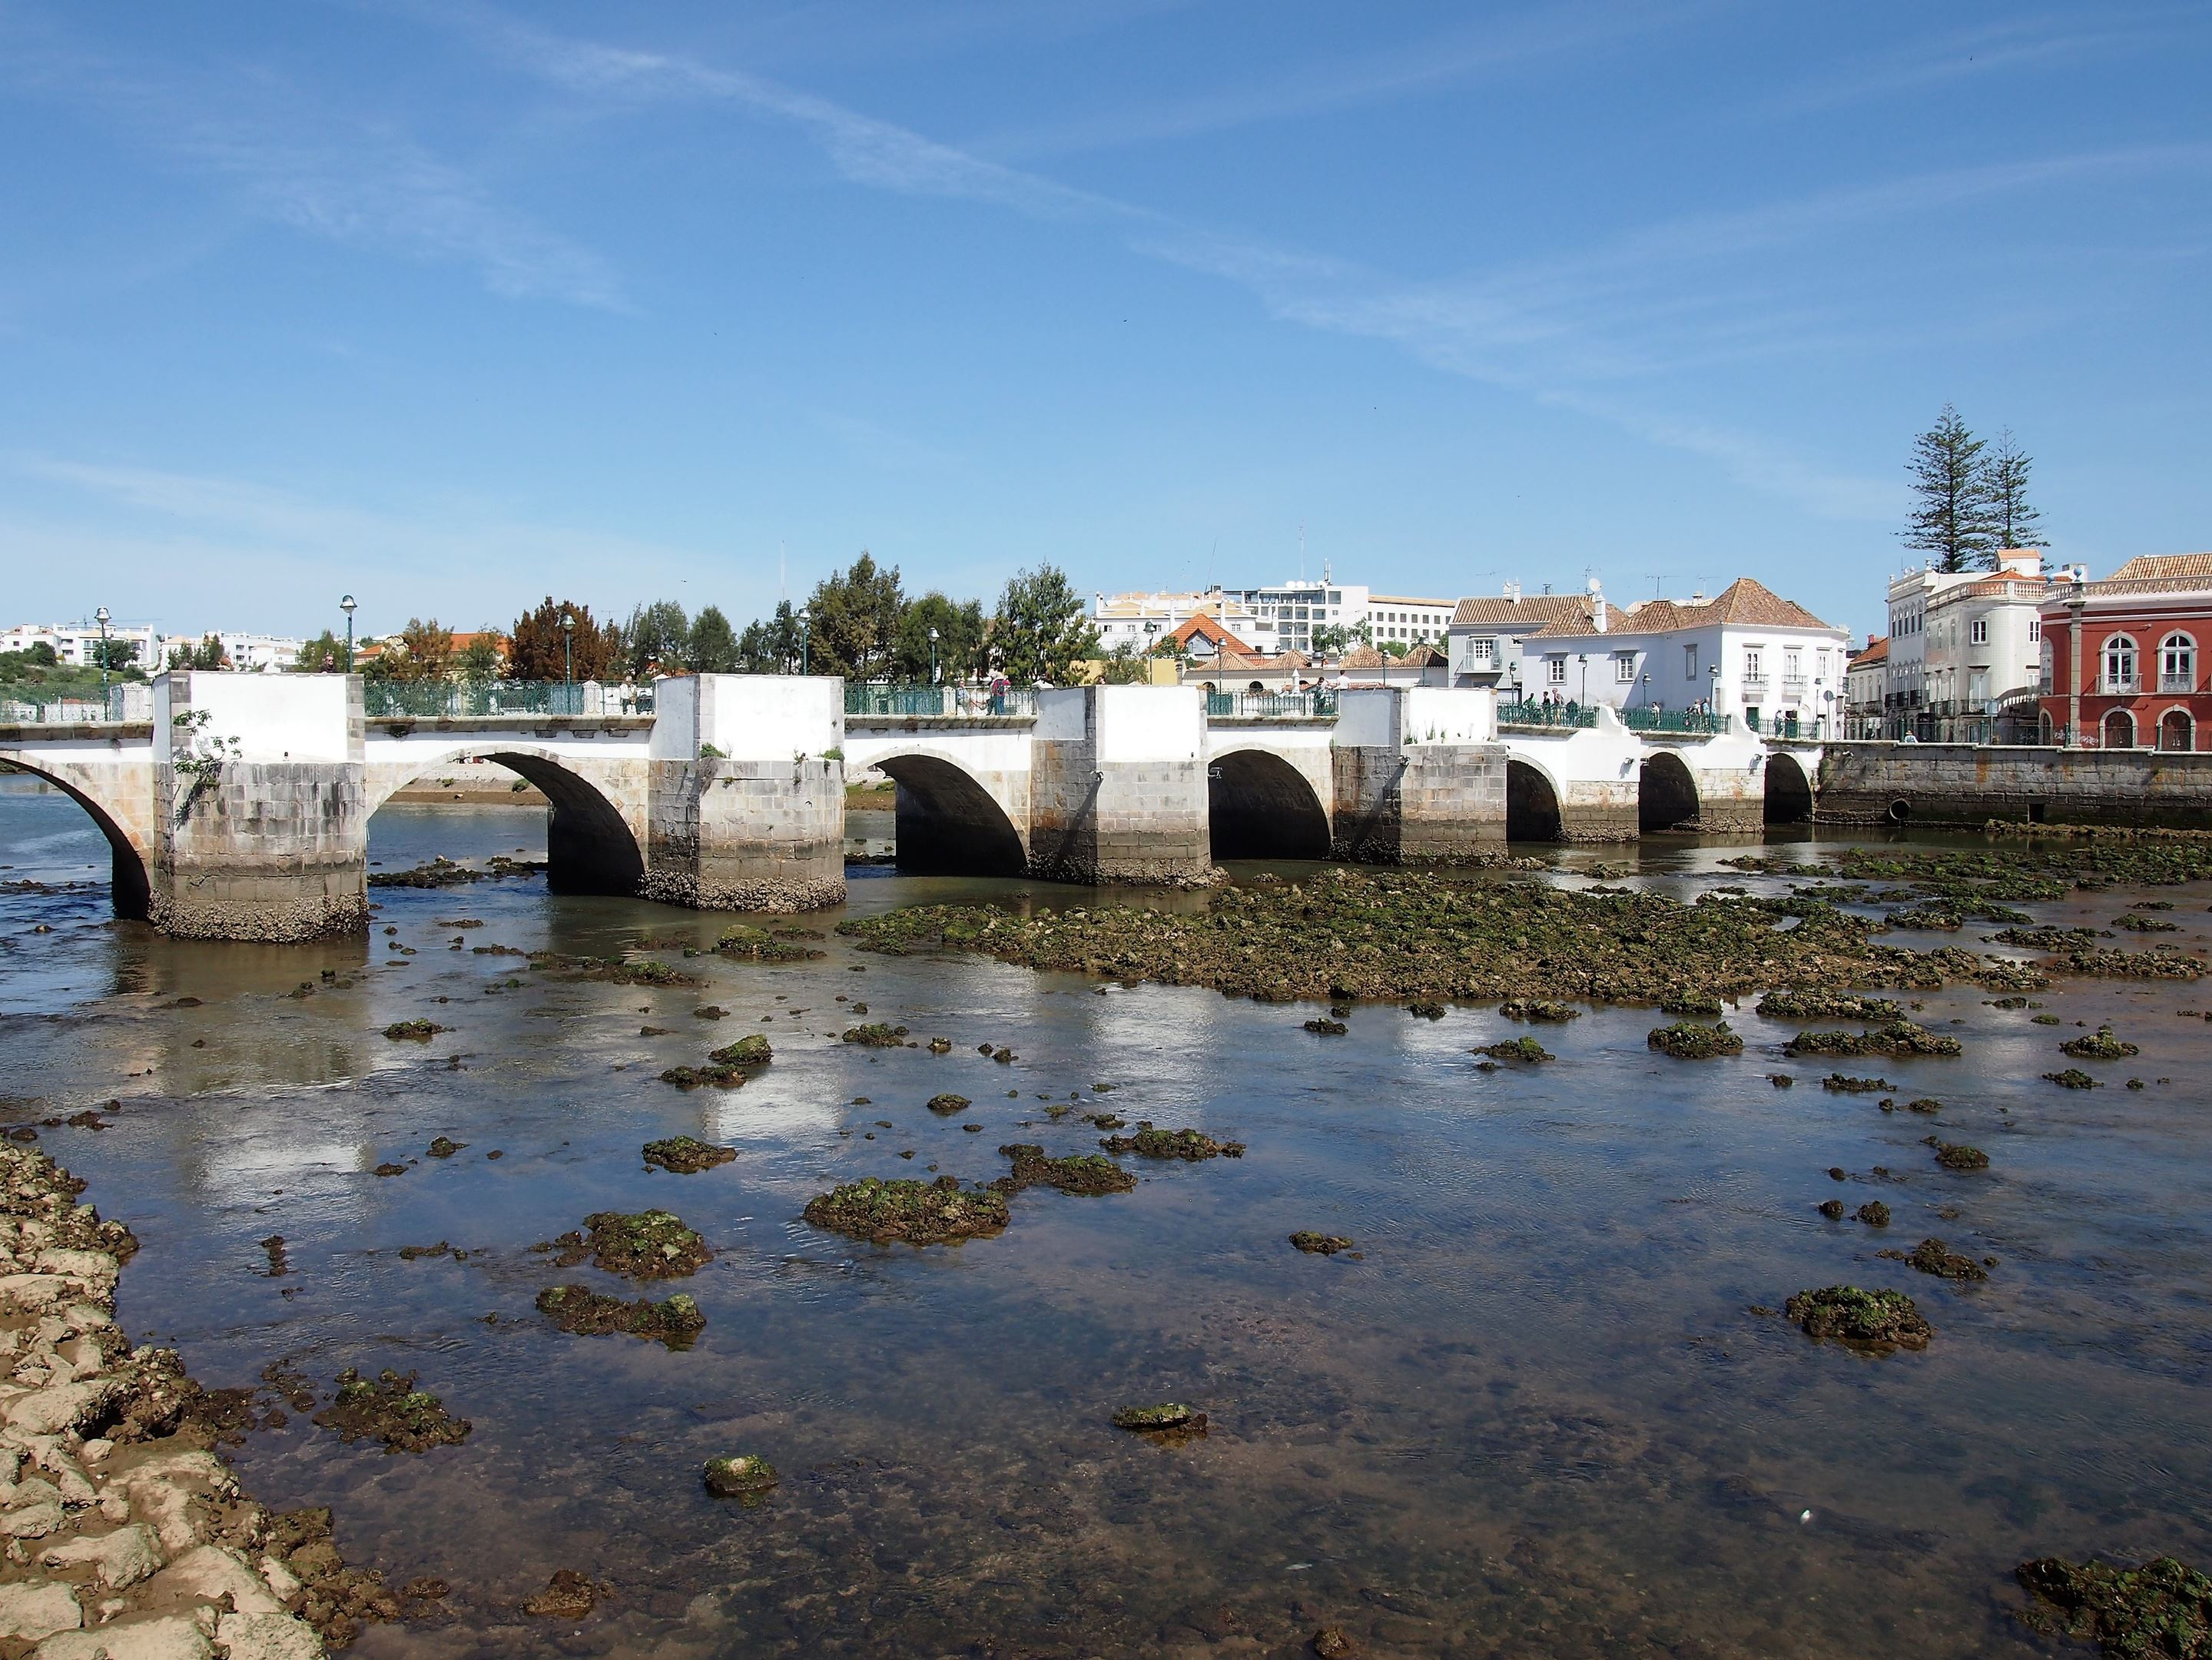 The Roman Bridge which crosses the Gilão River in Tavira. Although it's called Roman, it's not Roman, probably constructed in the 17th Century after the previous bridge collapsed, also not Roman.